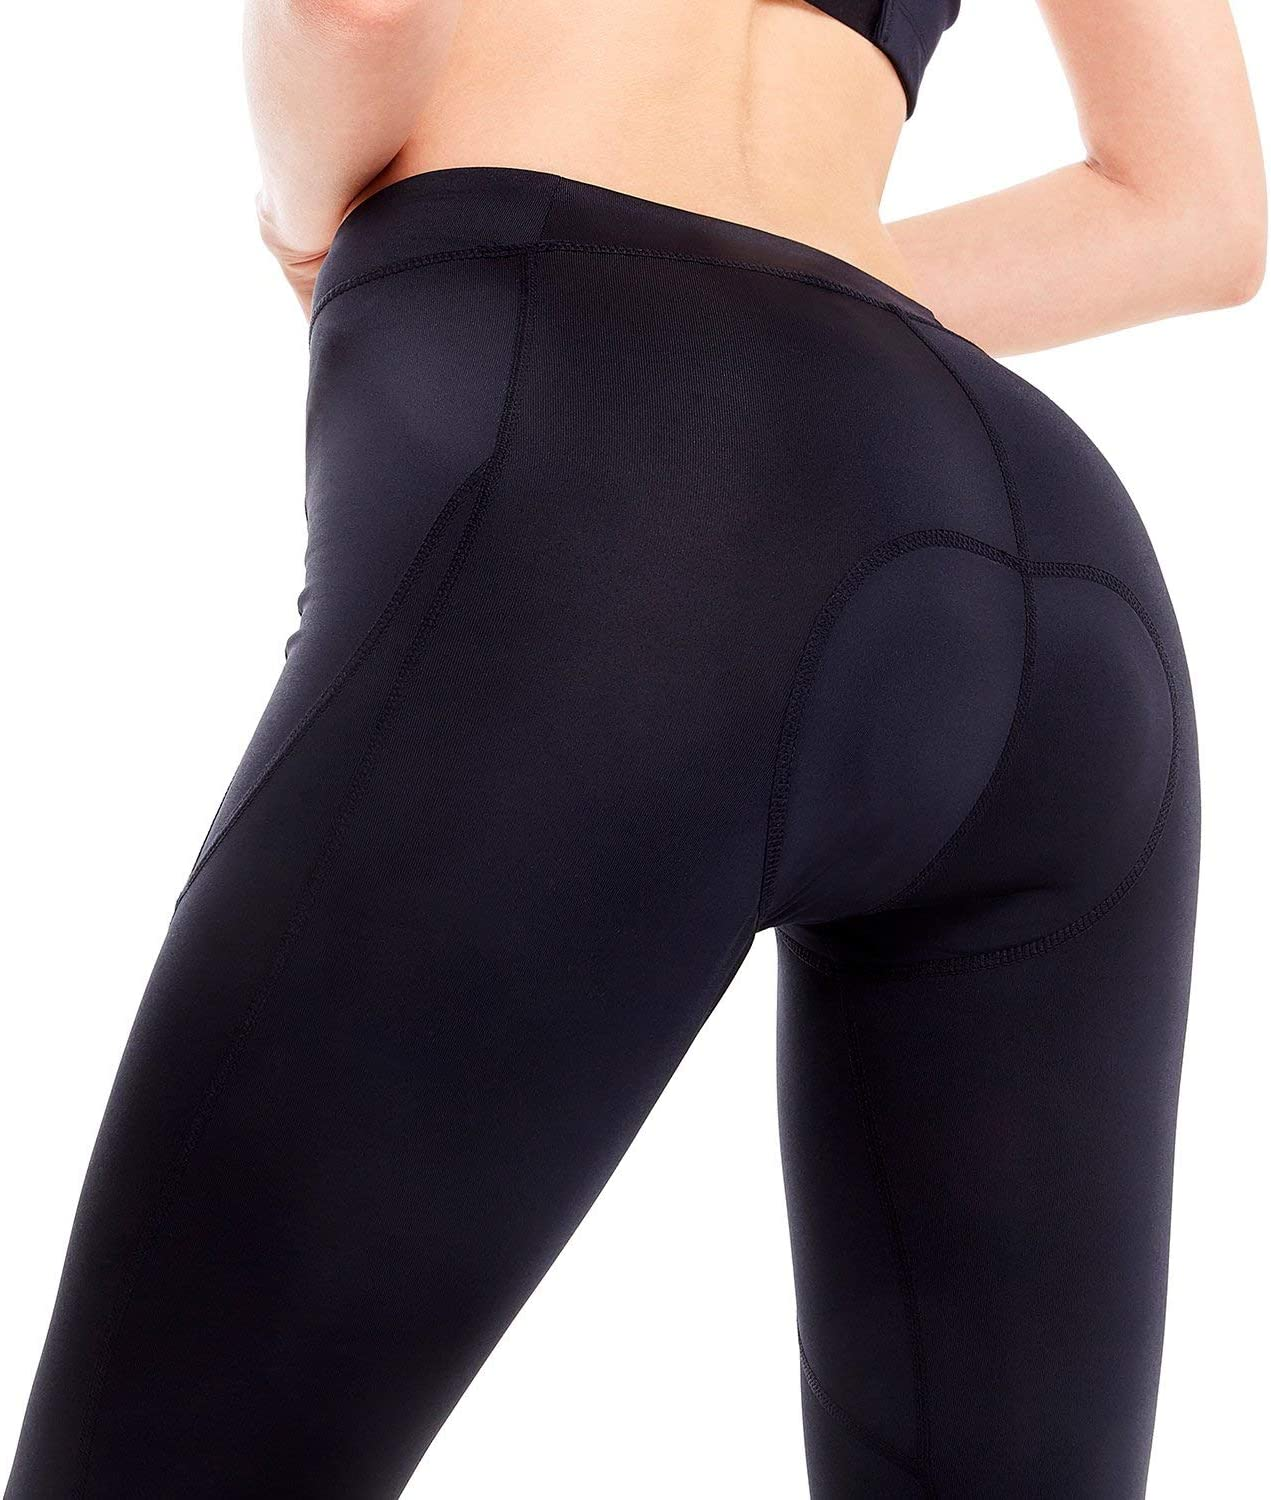 BALEAF Womens 3D Padded Cycling Tights Exercise Bike Compression Leggings with Wide Waistband